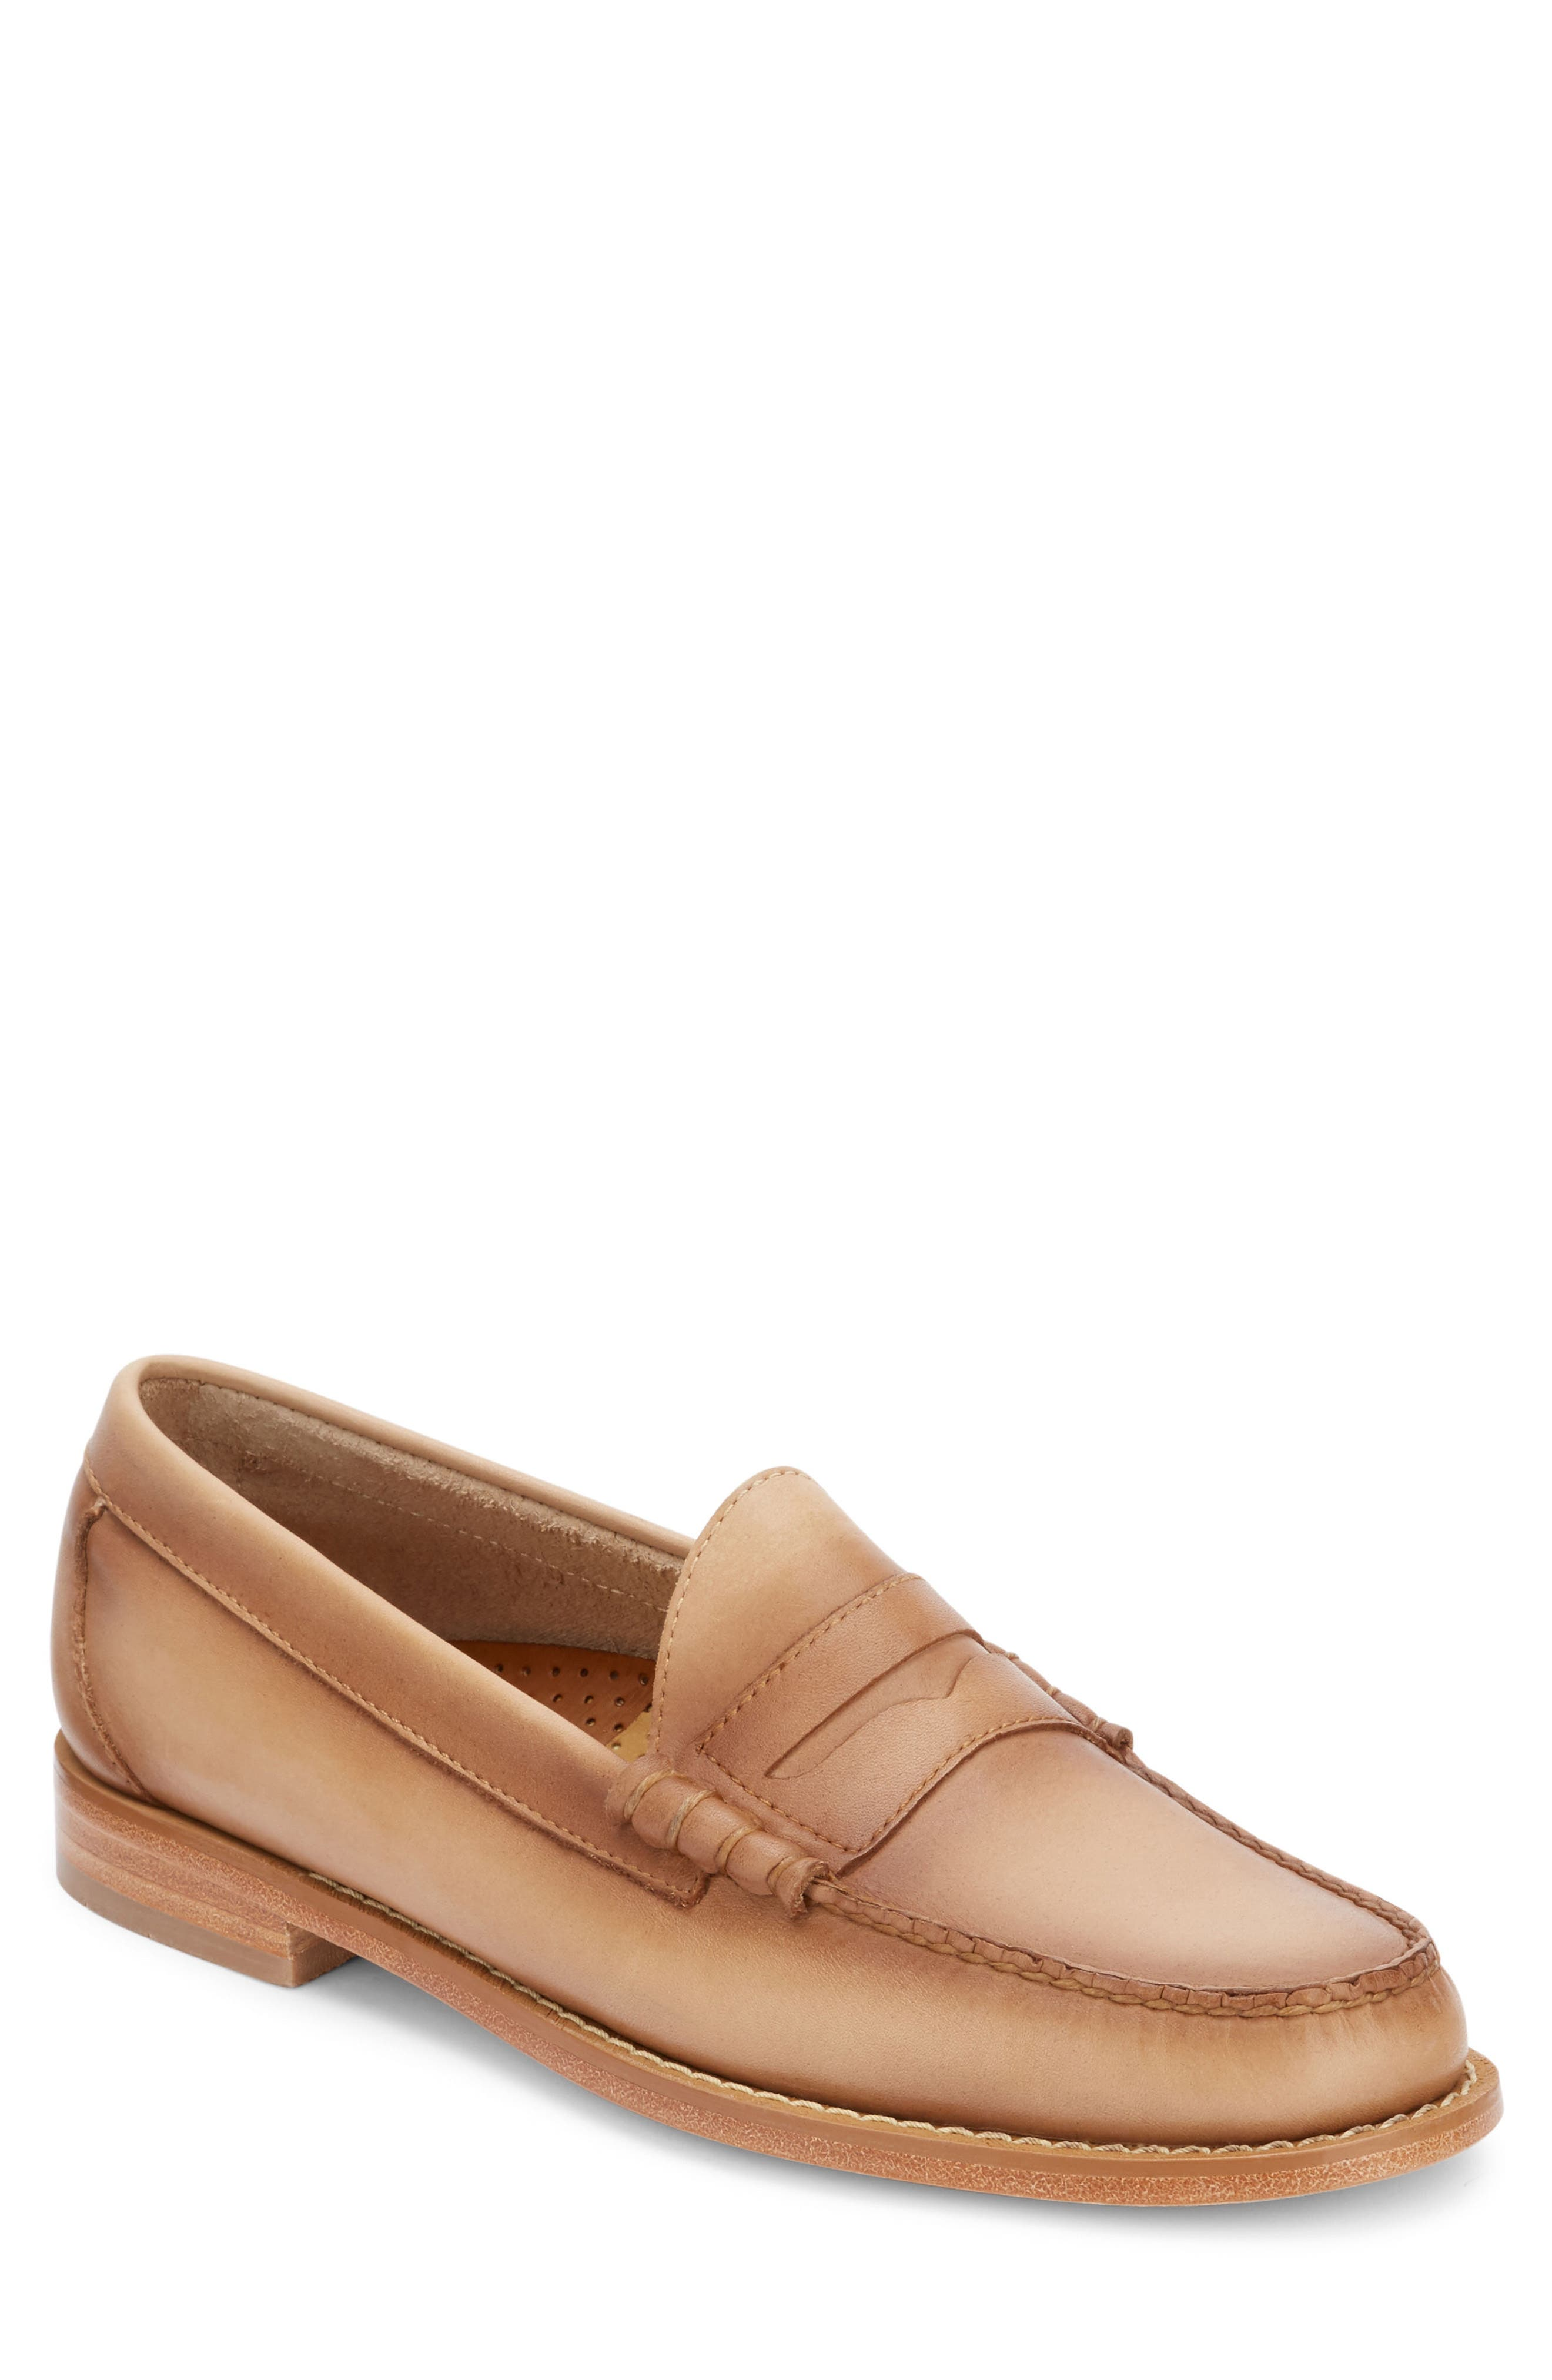 'Larson - Weejuns' Penny Loafer,                             Main thumbnail 1, color,                             VACHETTA LEATHER